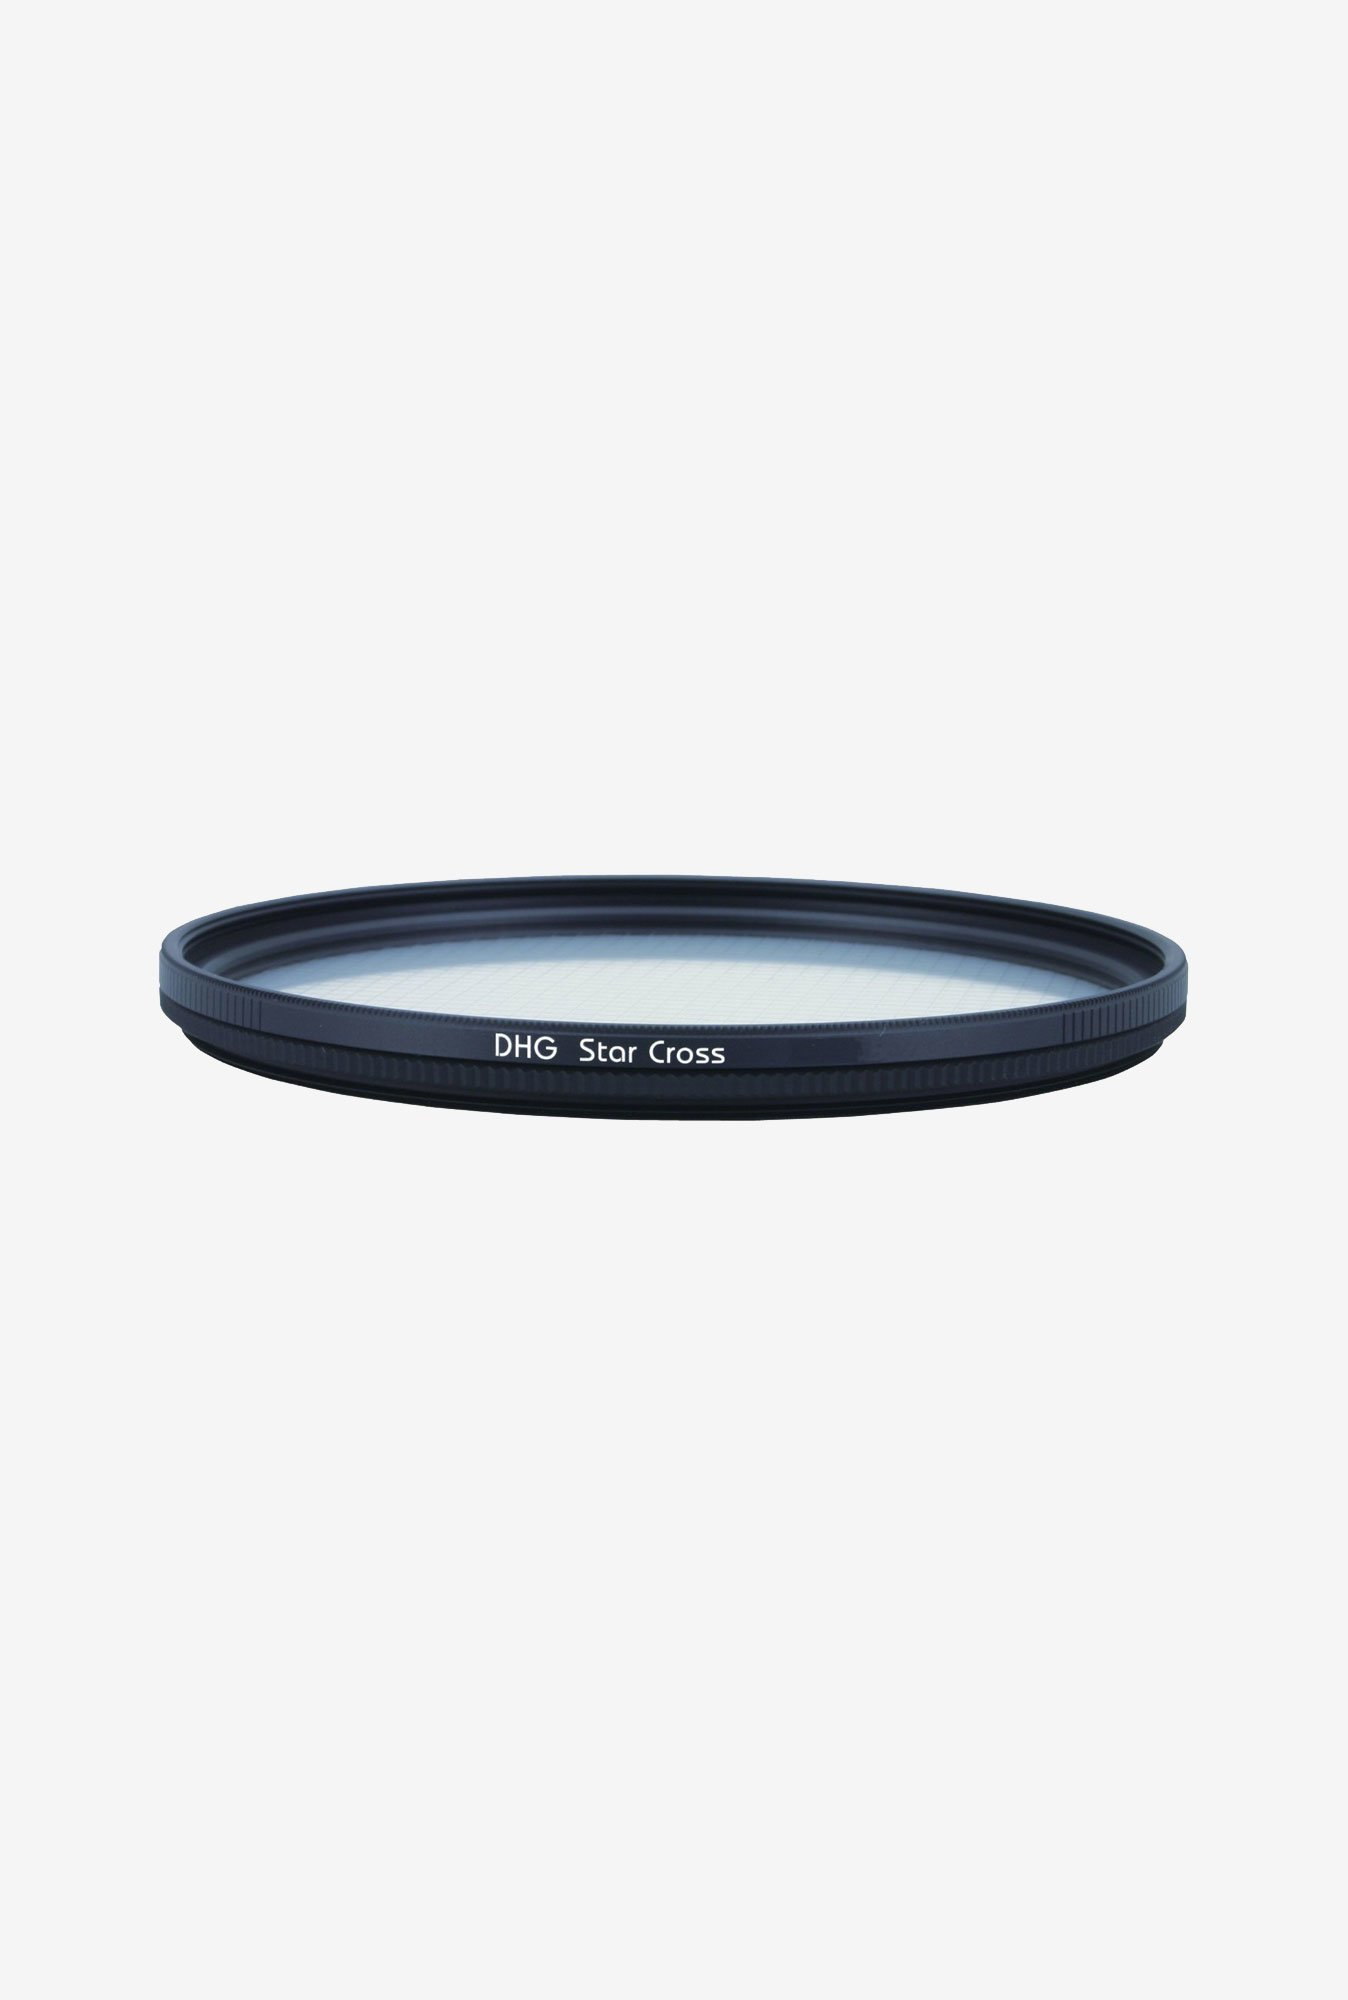 Marumi 58mm DHG Circular Star Cross Filter Lens (Black)